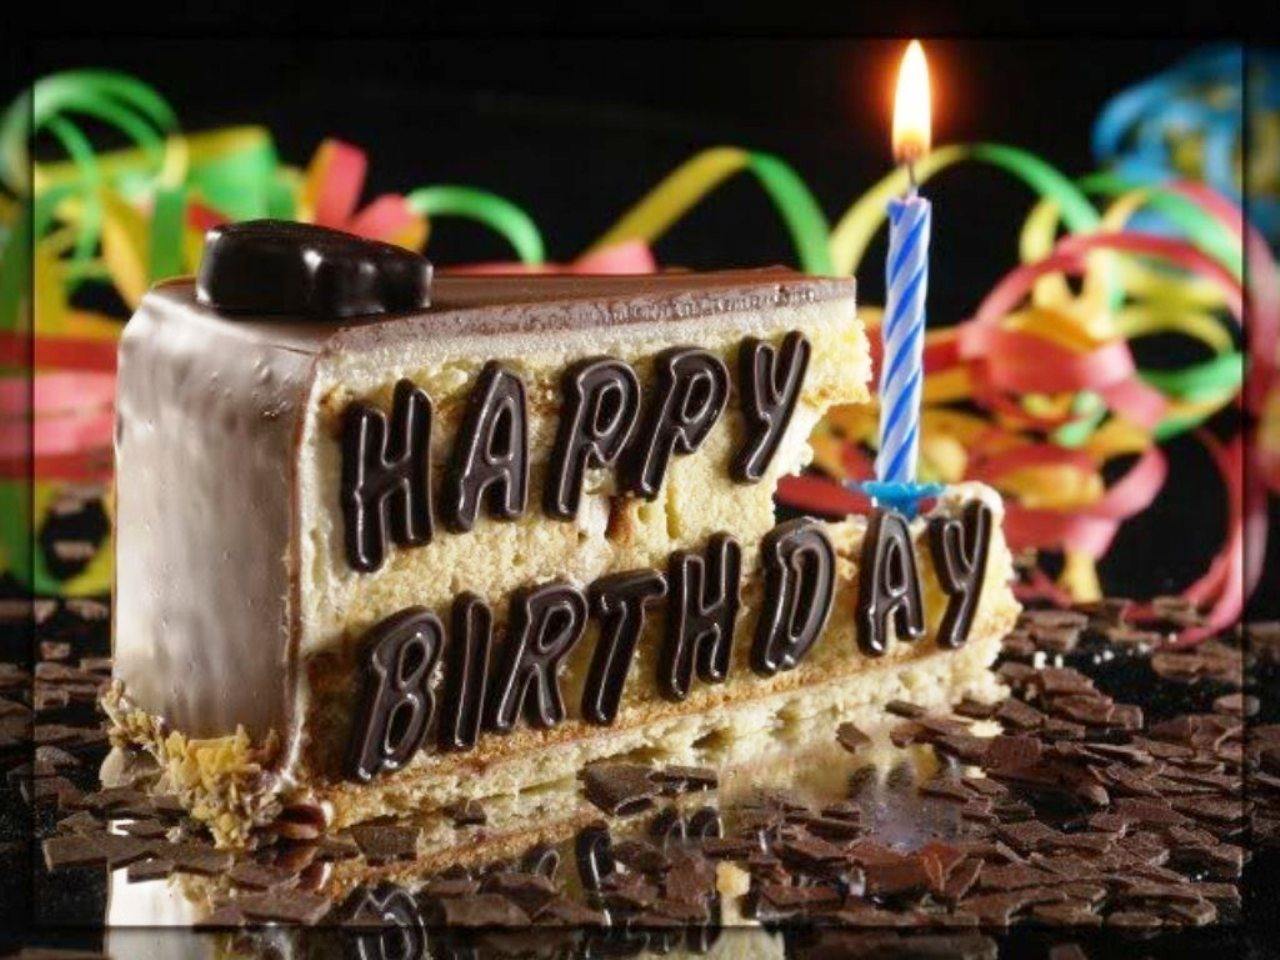 birthday cake wallpaper images ; 9c5e24e1cce45b938129a2f029beec3c